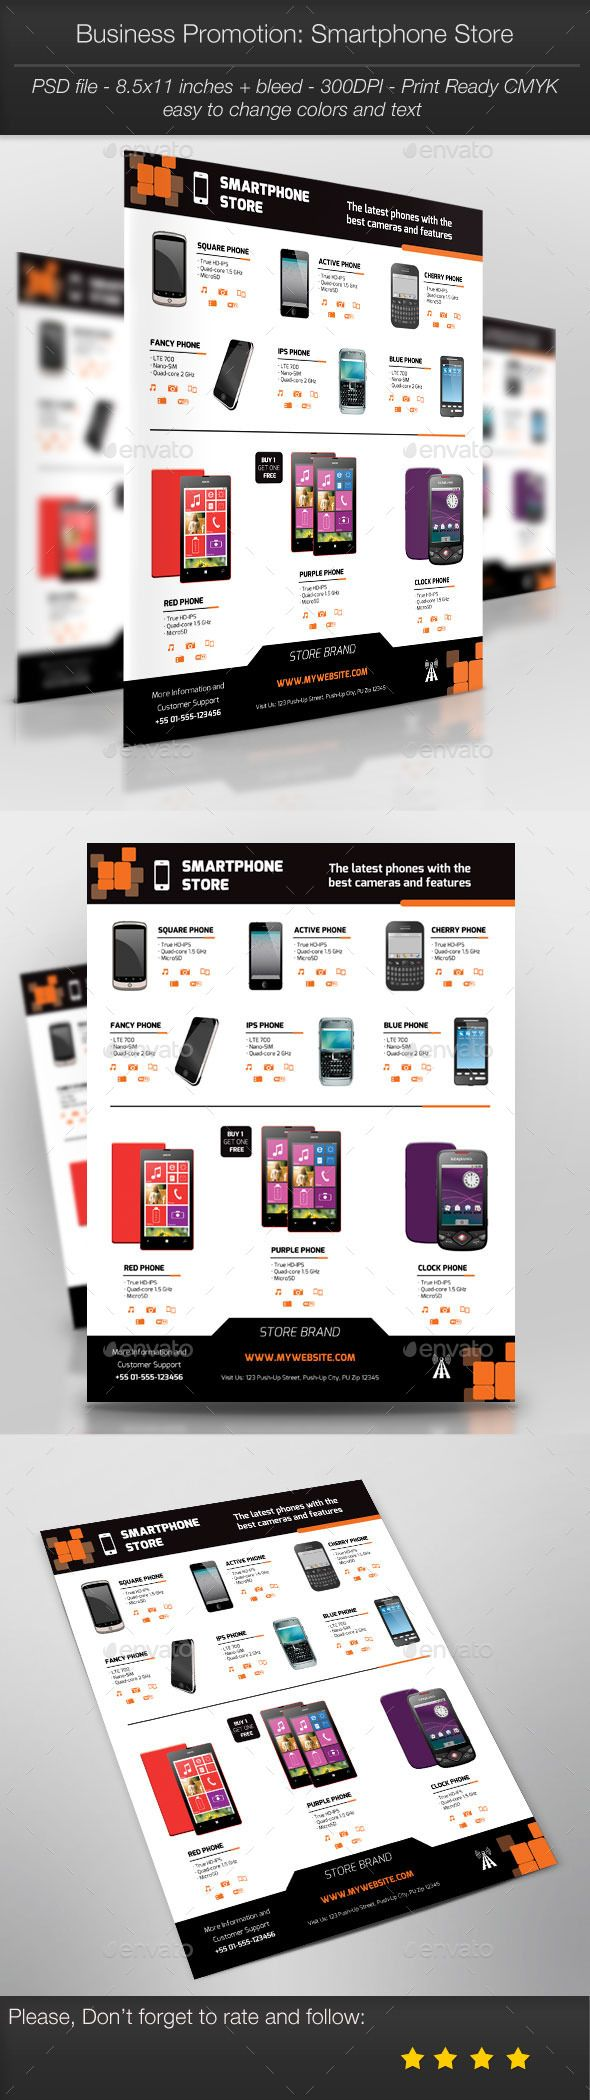 Business Promotion: Smartphone Store